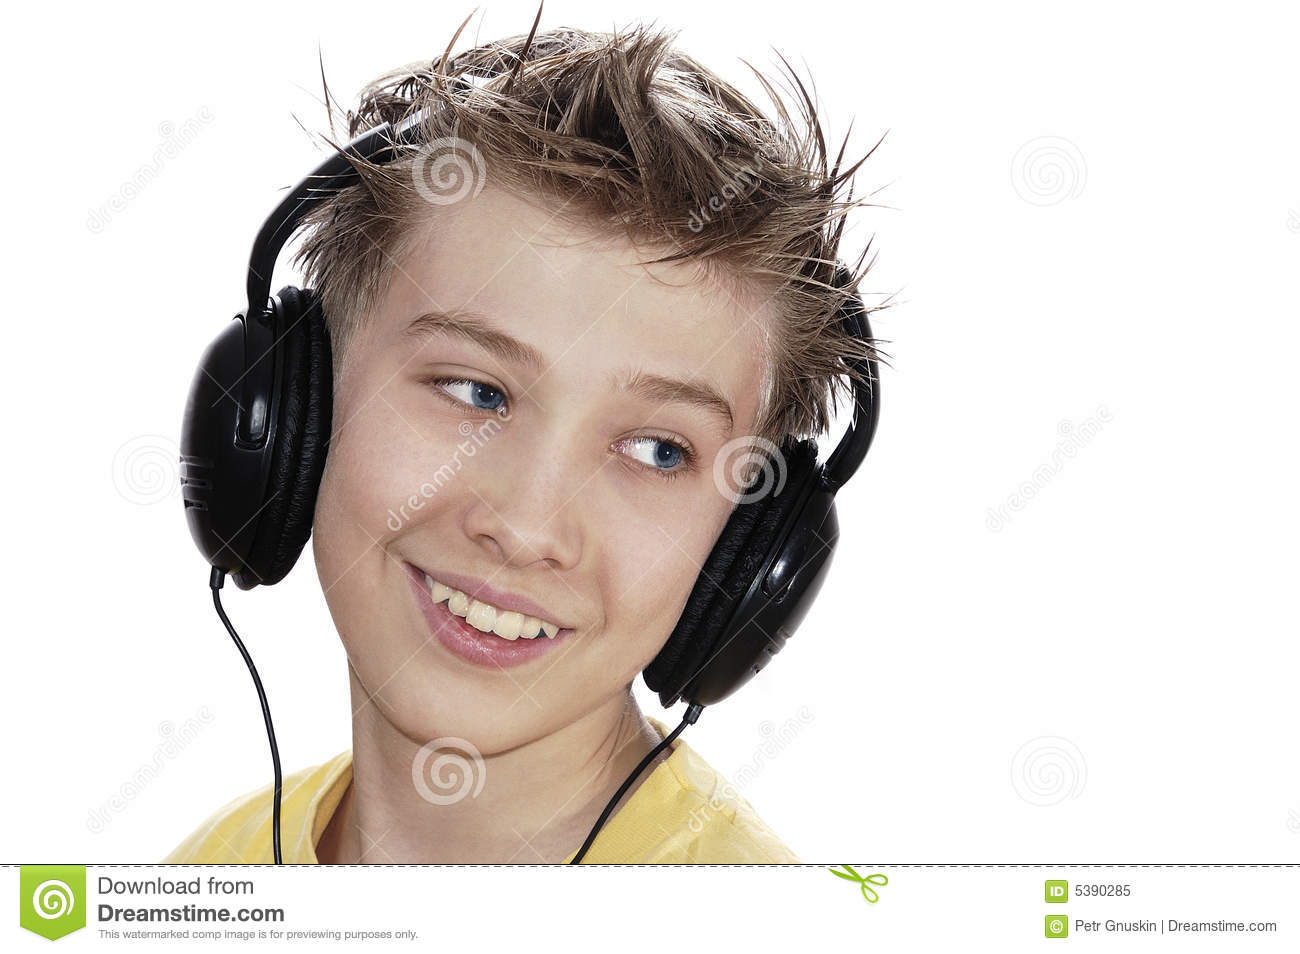 boy-listening-to-music-headphones-5390285.jpg